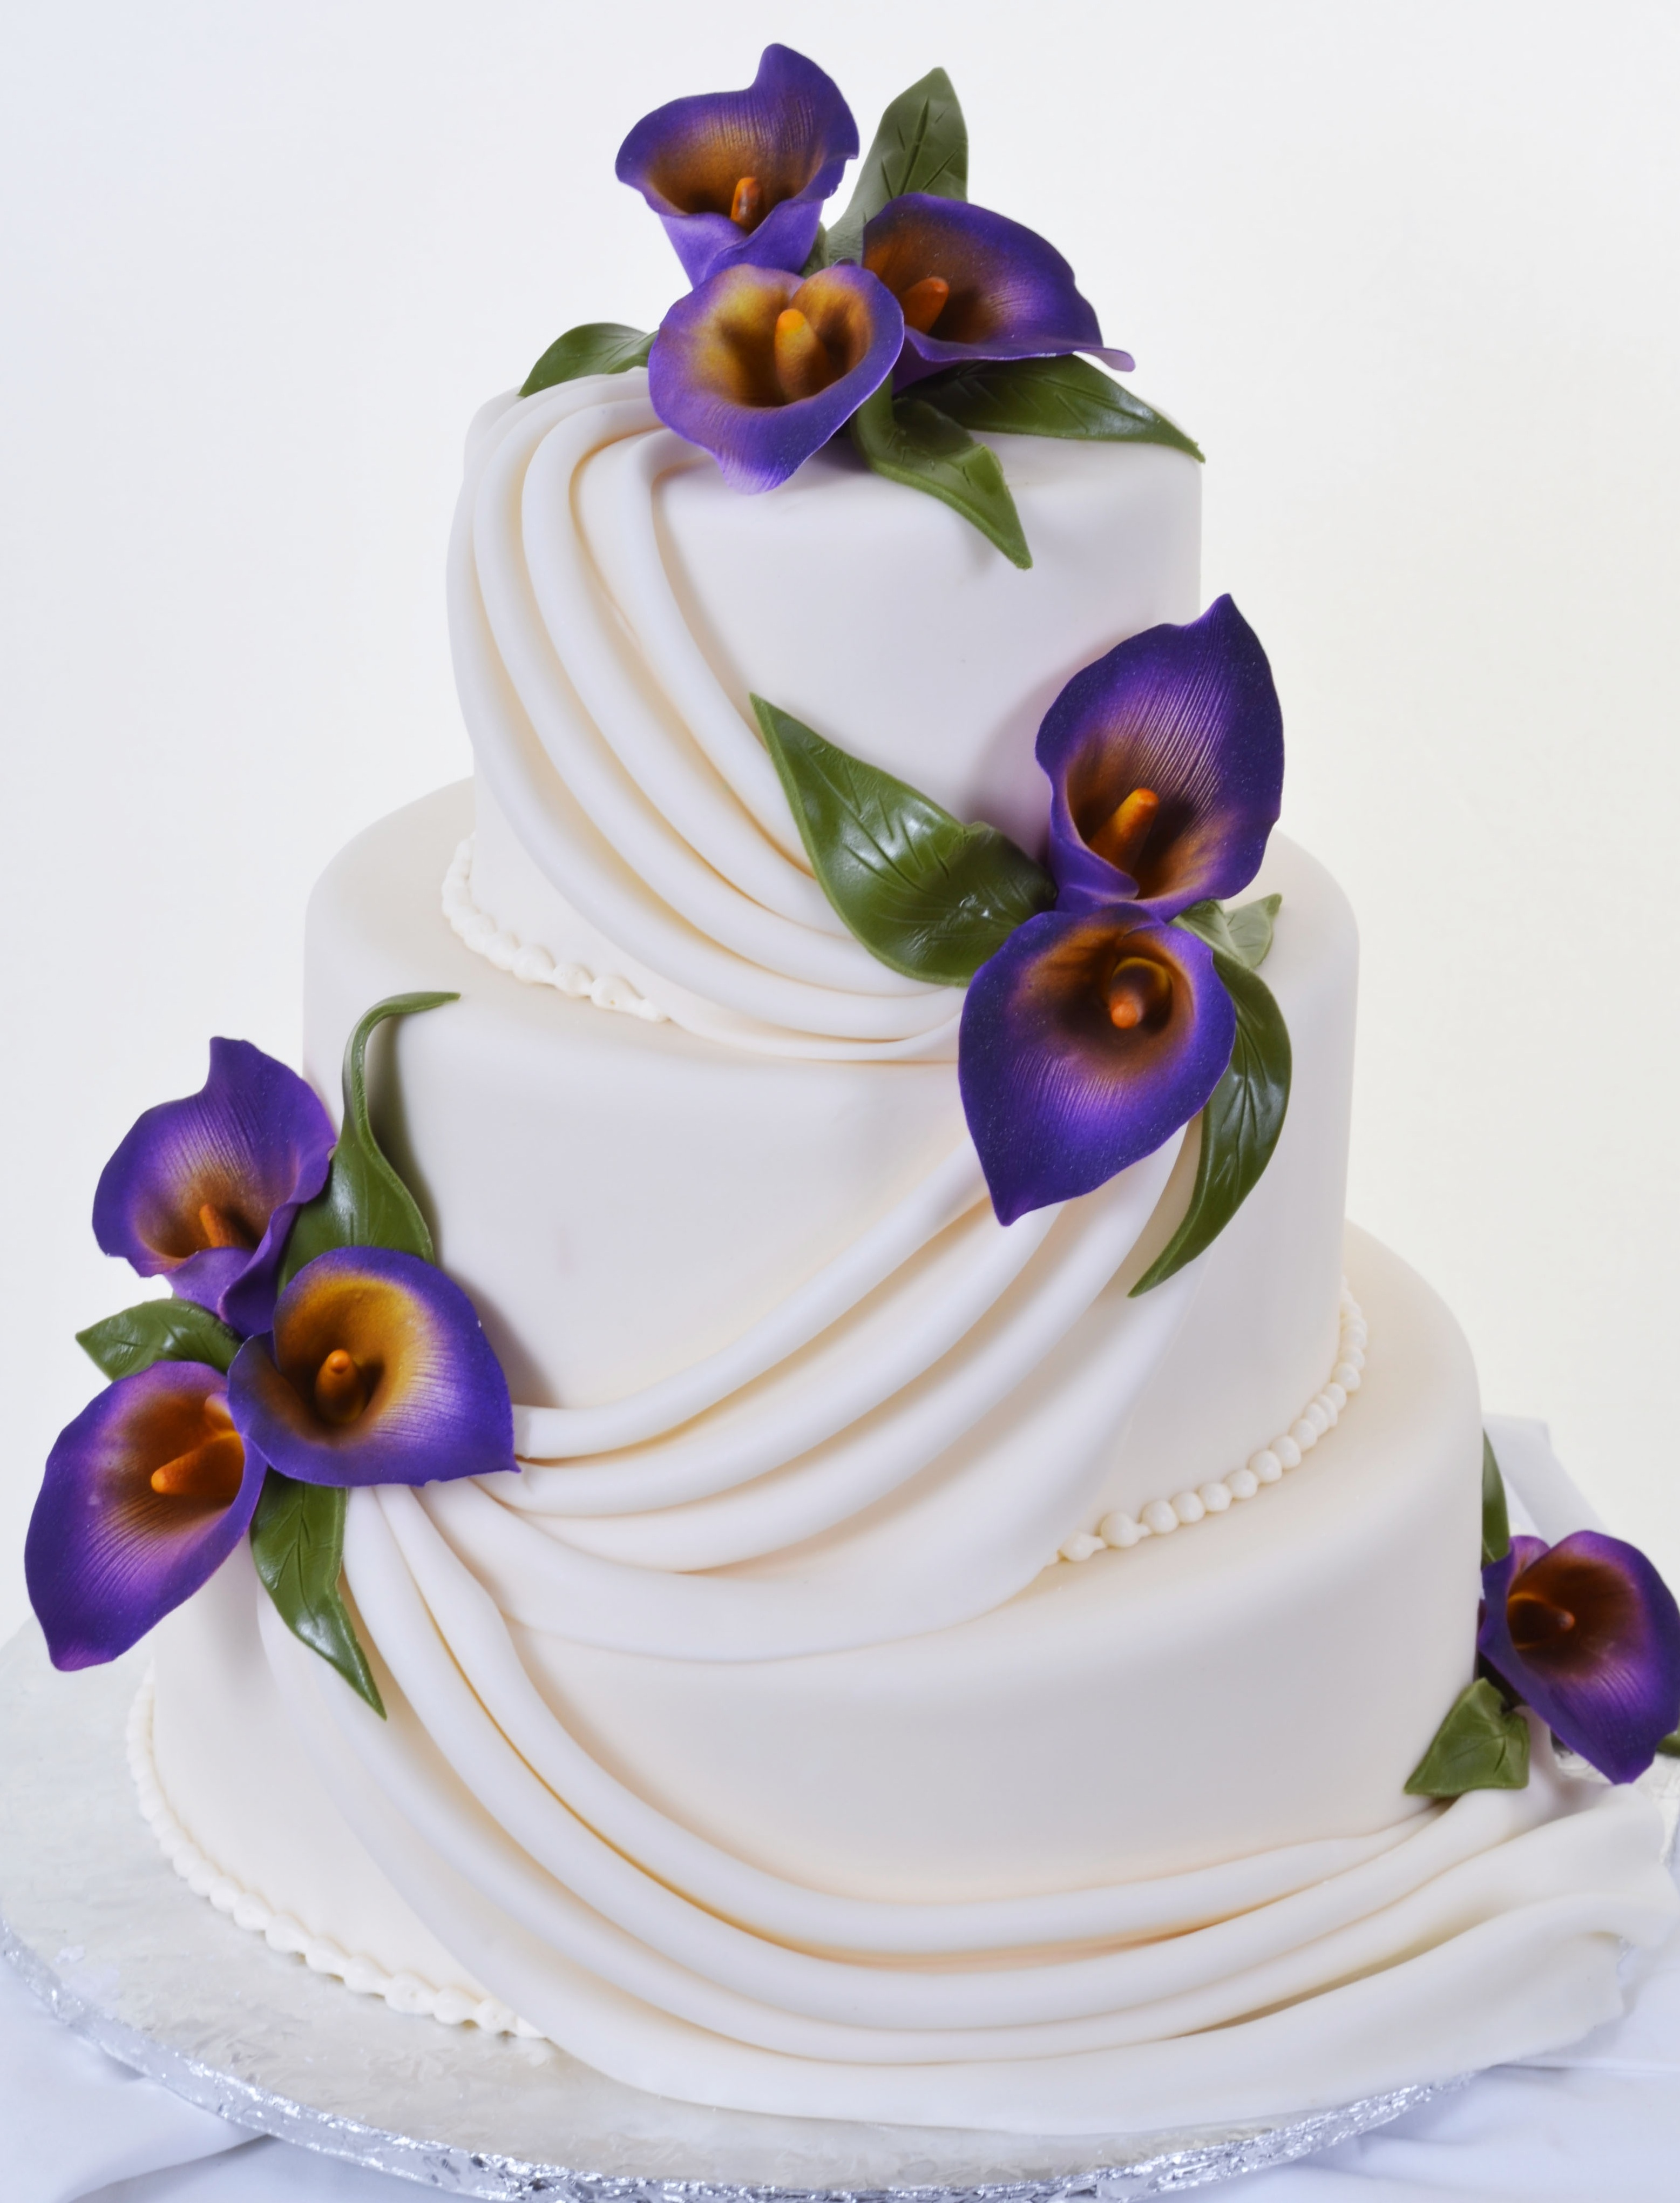 Pastry Palace Las Vegas - Wedding Cake 586 - Swags & Lilies